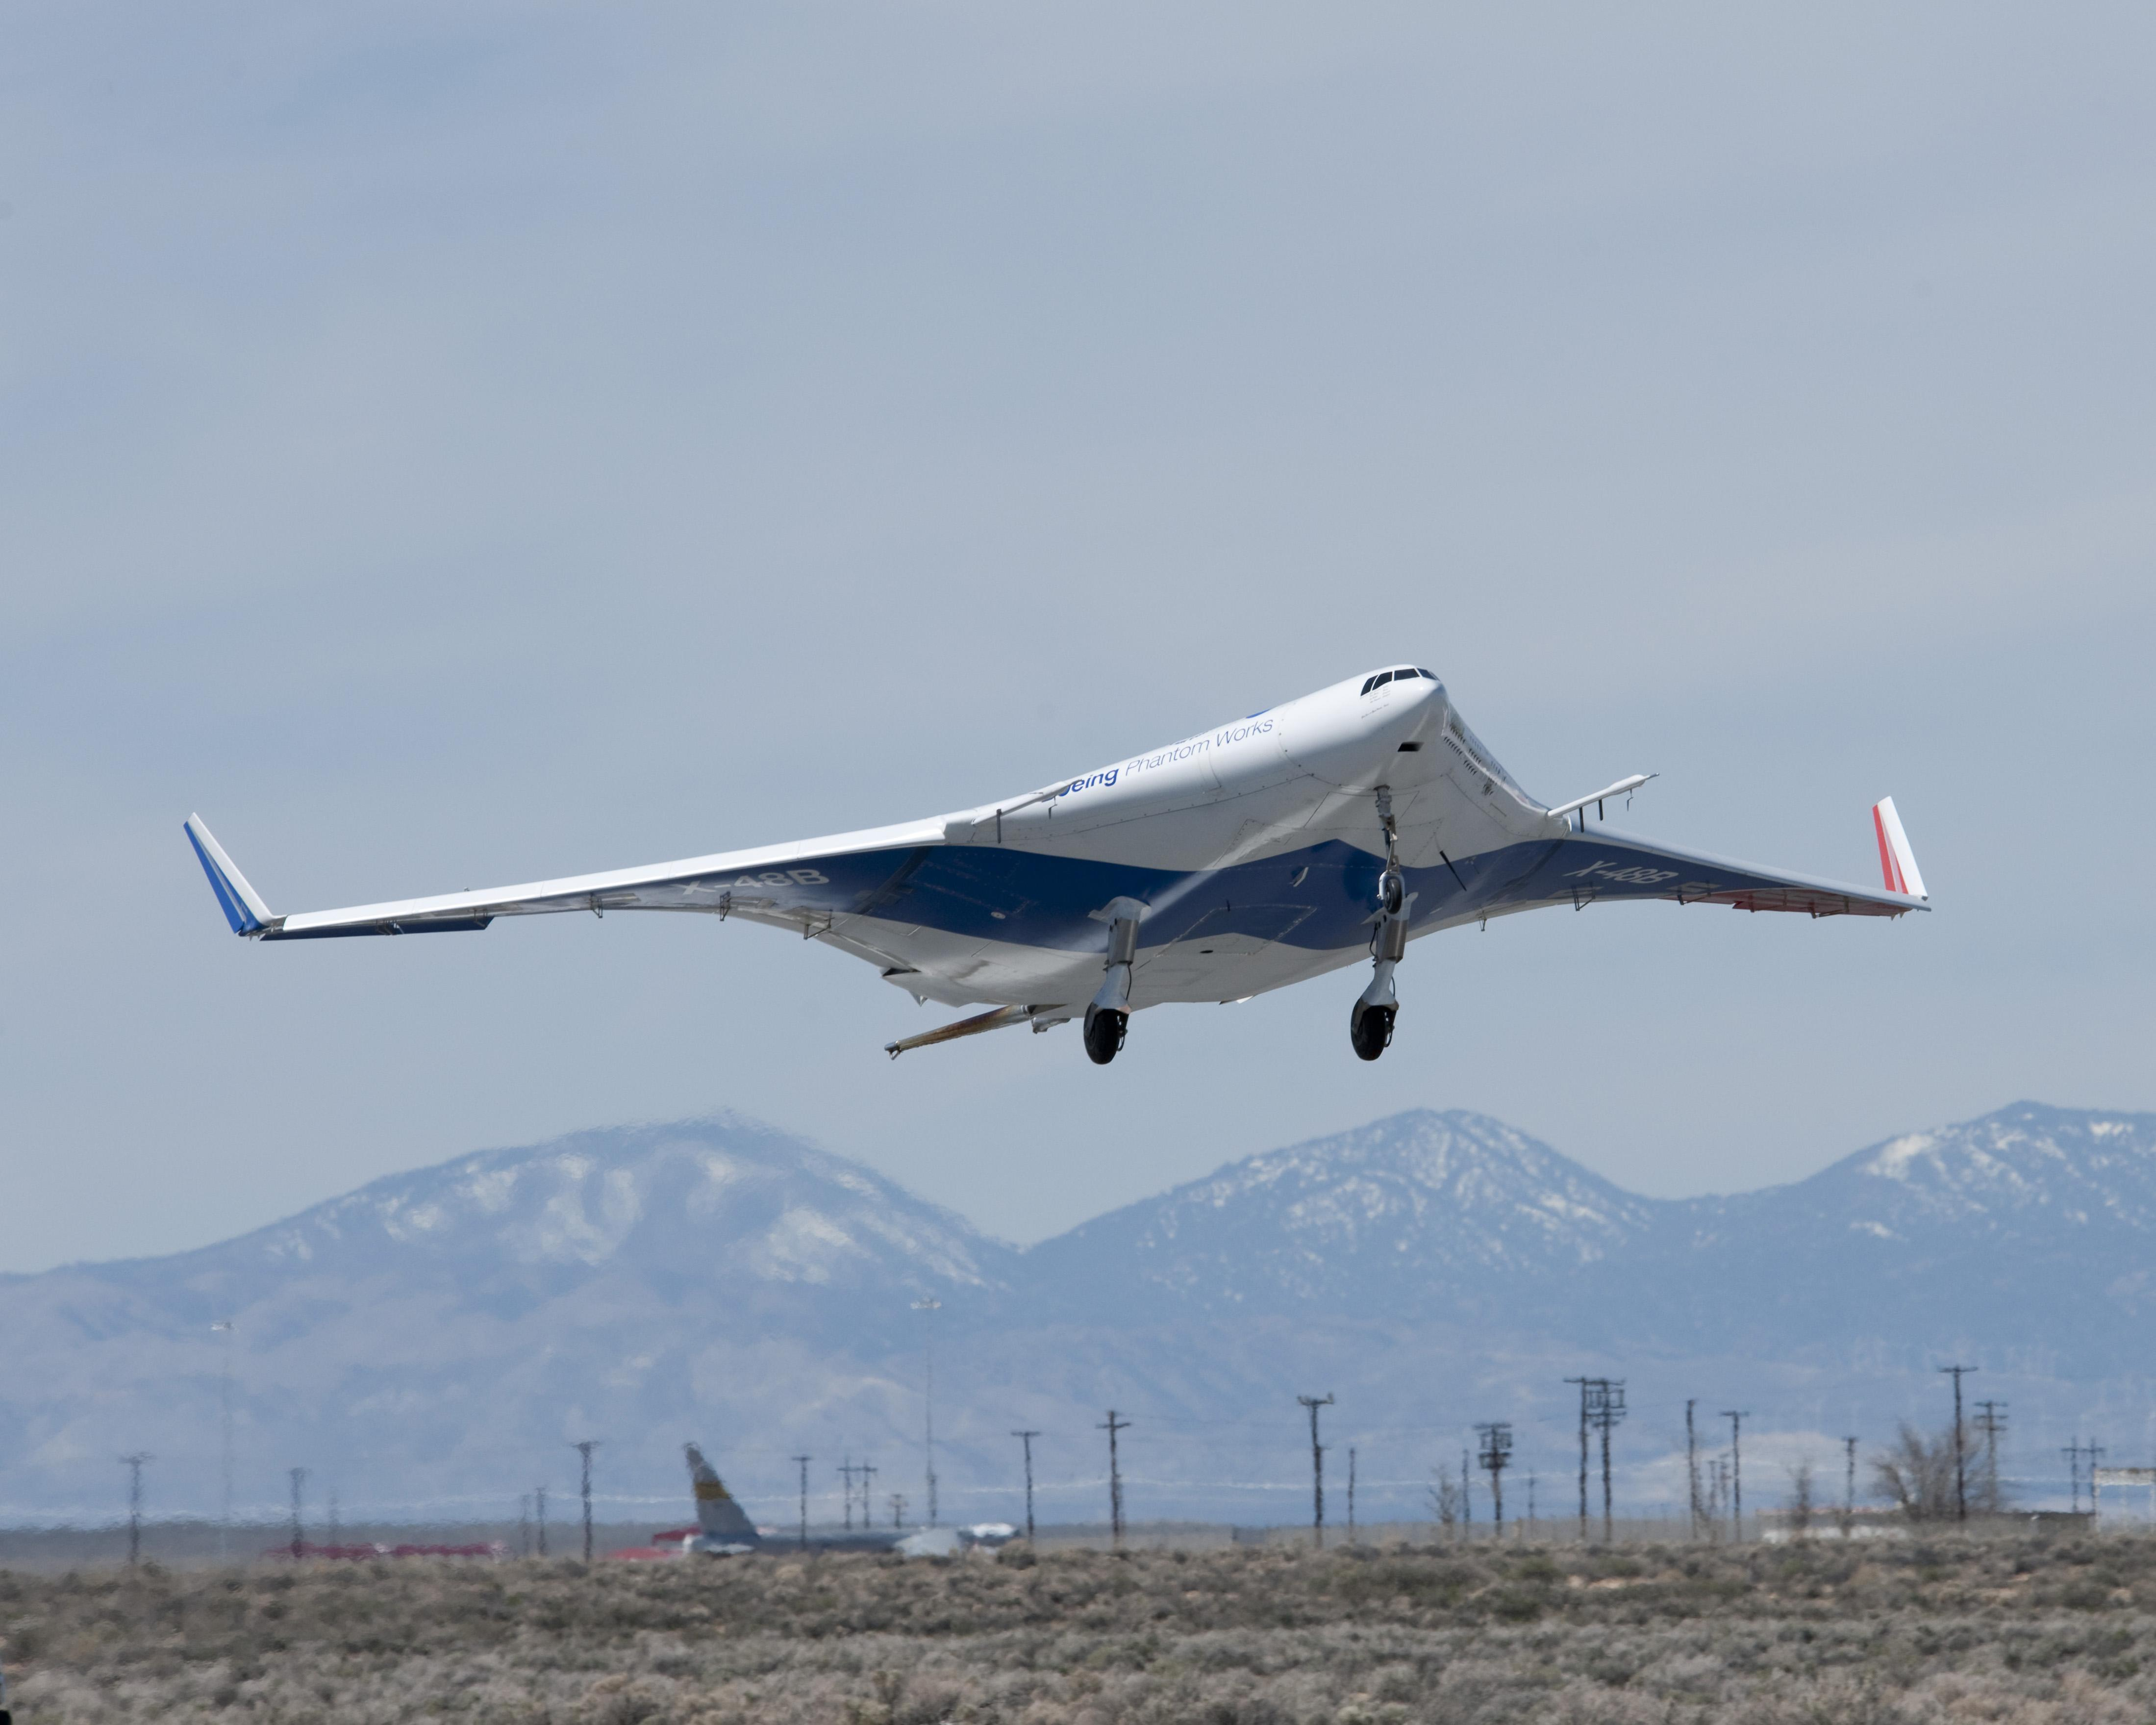 nasa x 48 drone aircraft - photo #10